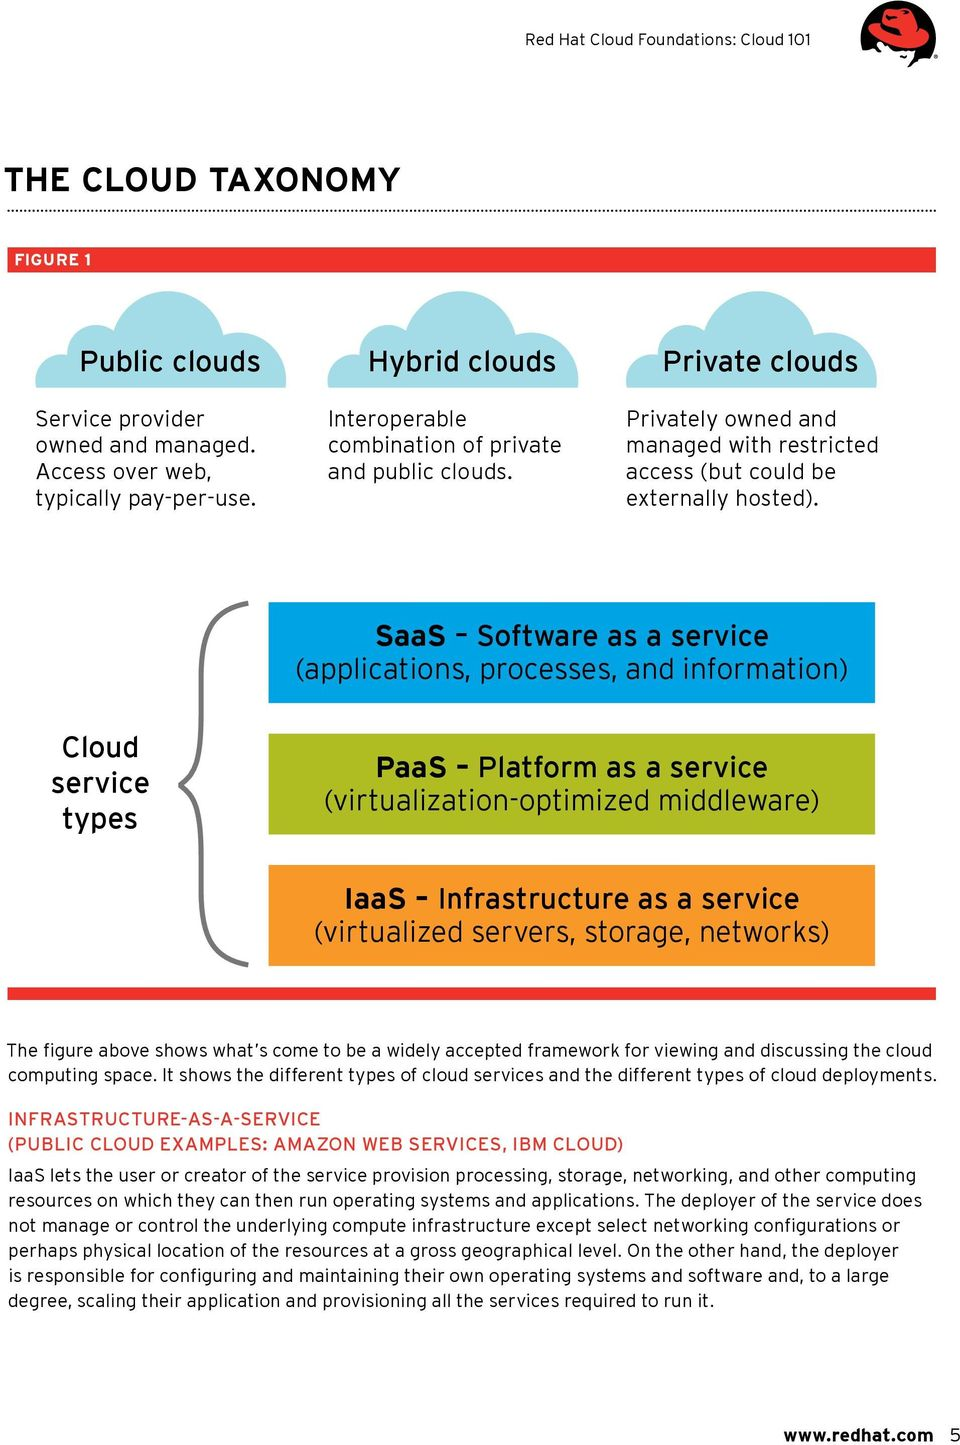 SaaS Software as a service (applications, processes, and information) Cloud service types PaaS Platform as a service (virtualization-optimized middleware) IaaS Infrastructure as a service